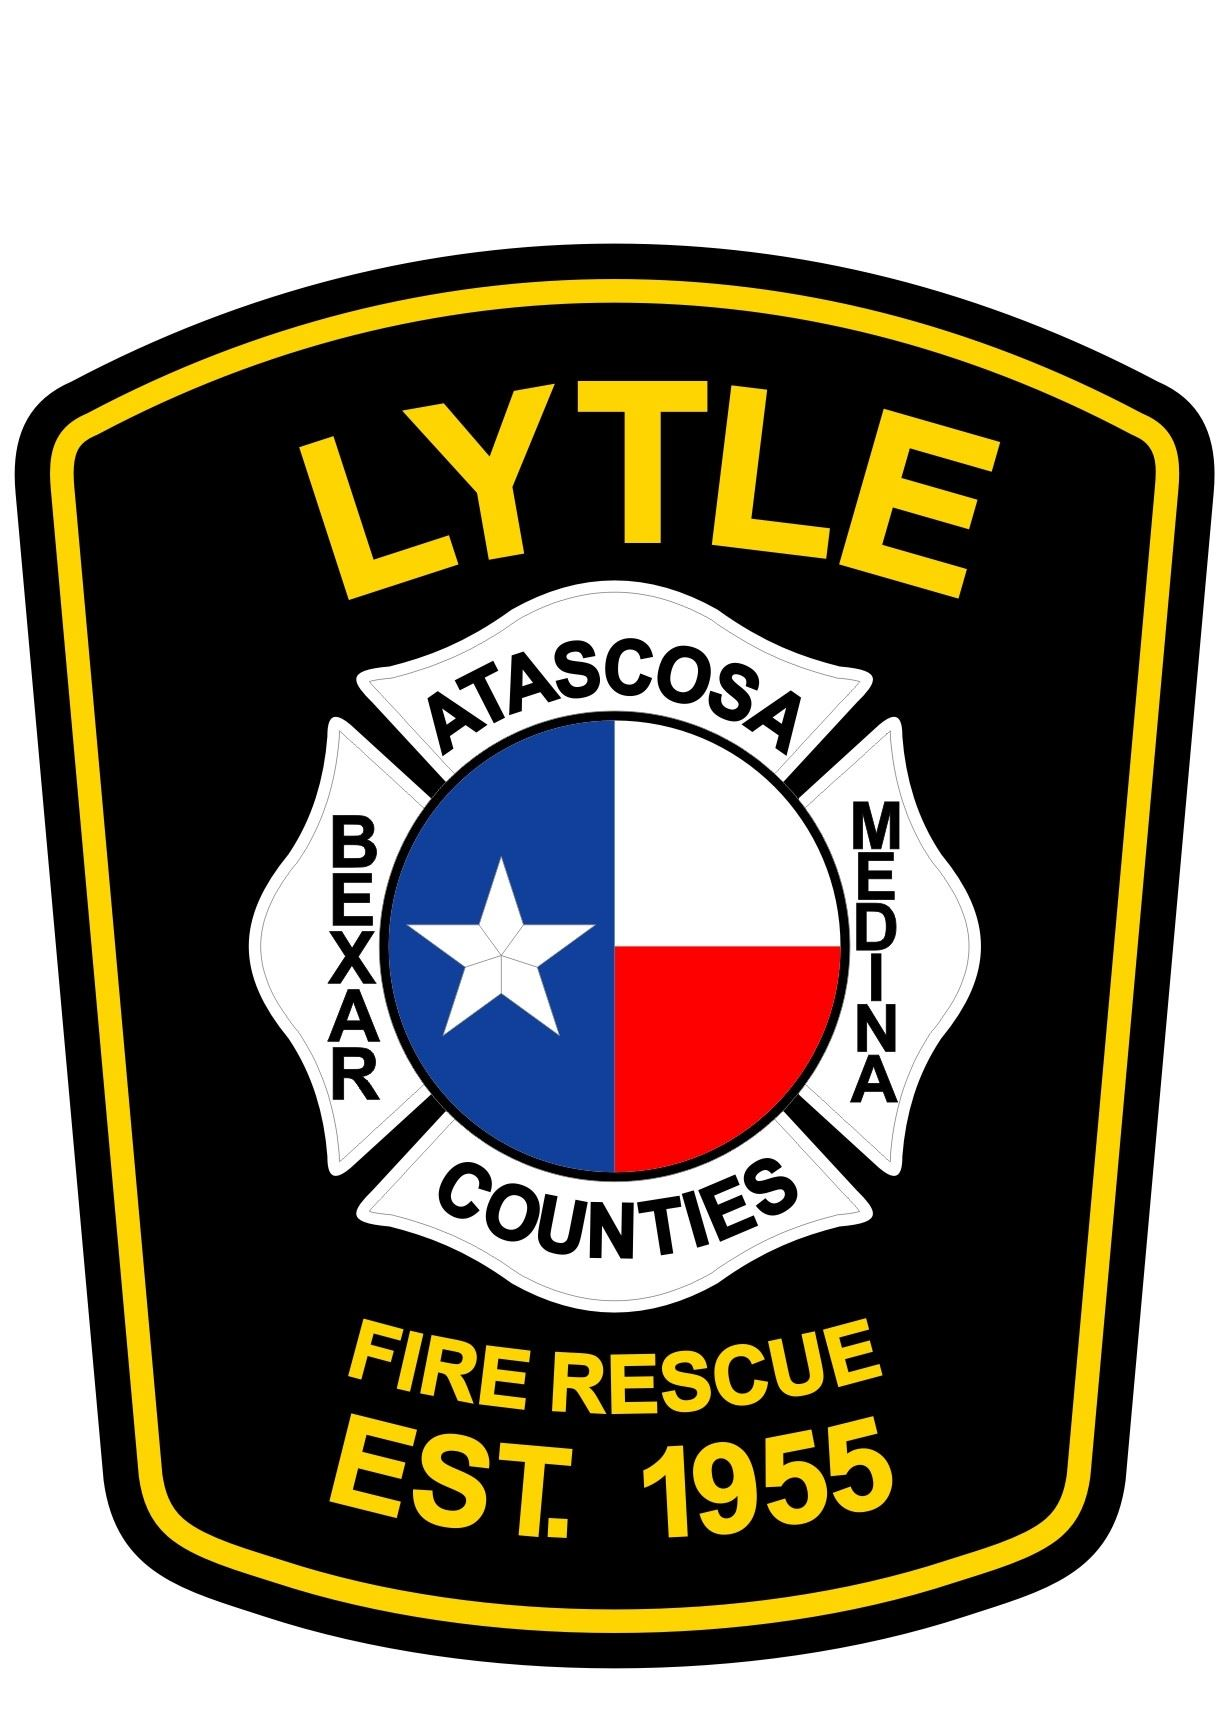 LYTLE FIRE LARGE TX (2)